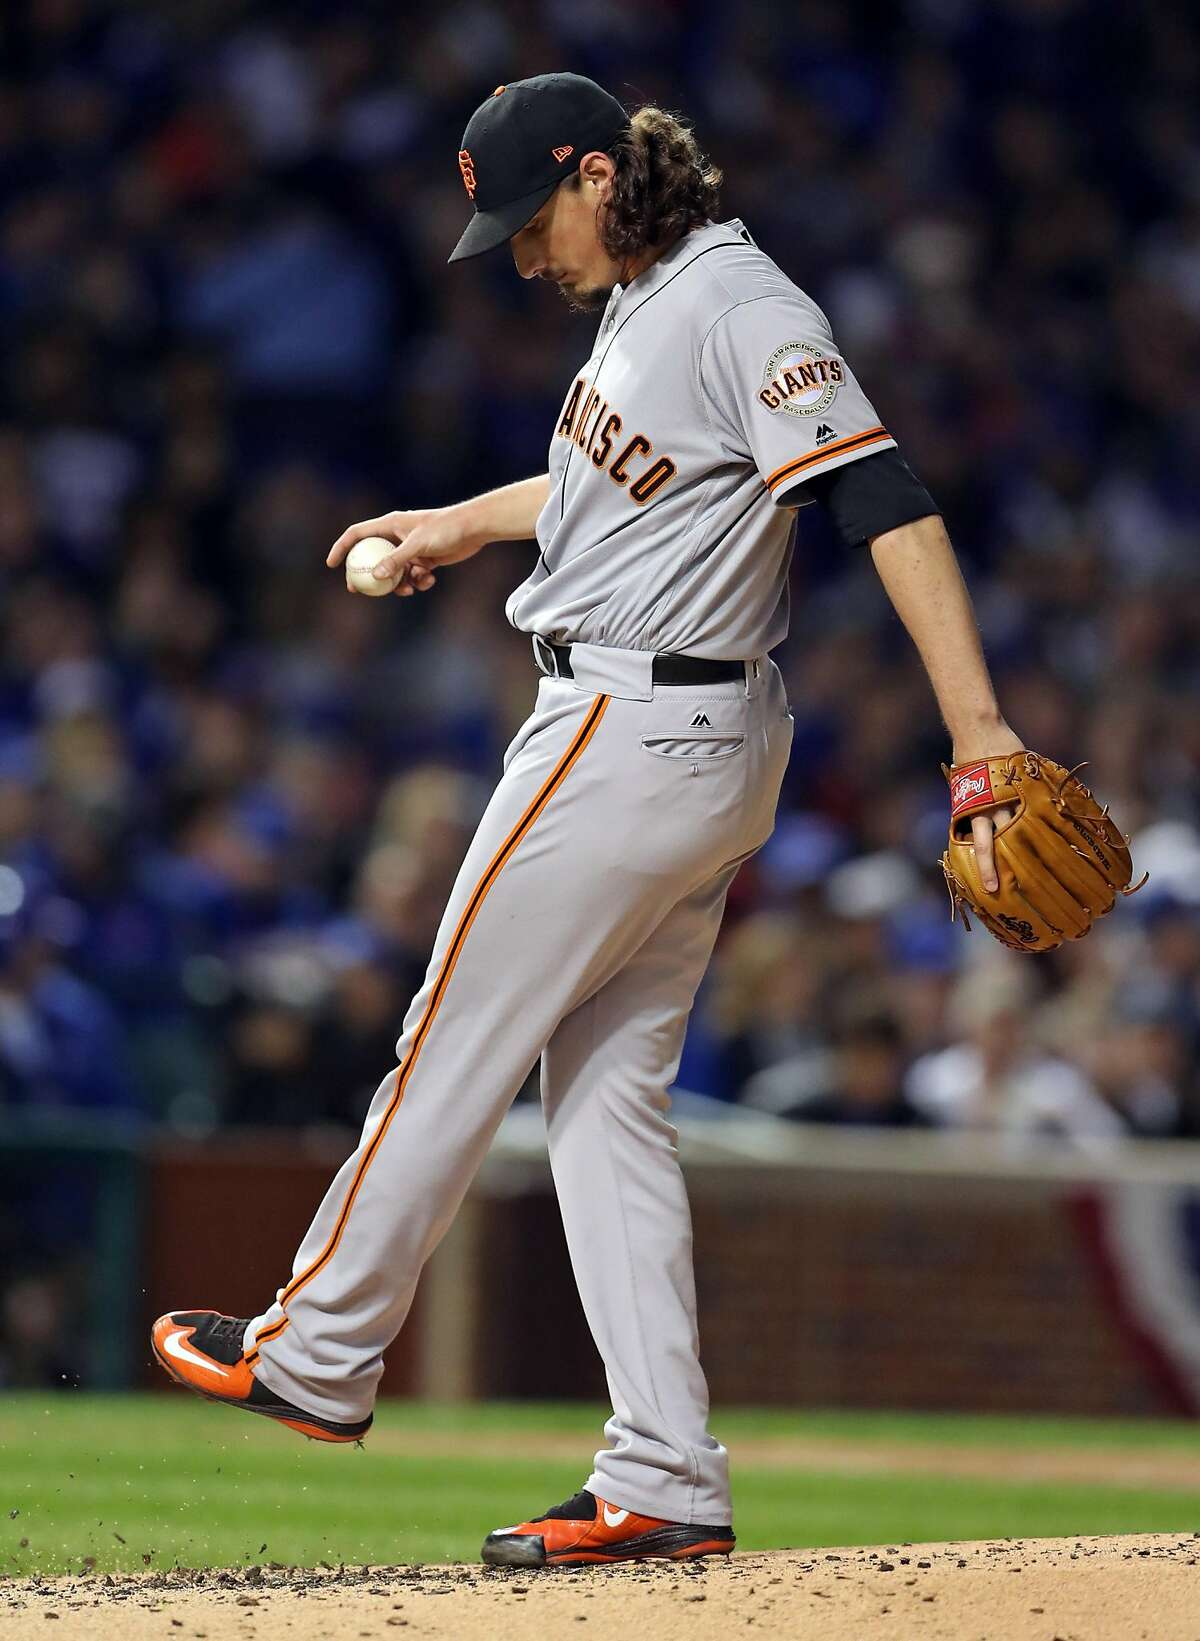 San Francisco Giants' Jeff Samardzija reacts during Chicago Cubs' 3-run 2nd inning during Game 2 of the National League Division Series at Wrigley Field in Chicago. IL, on Saturday, October 8, 2016.